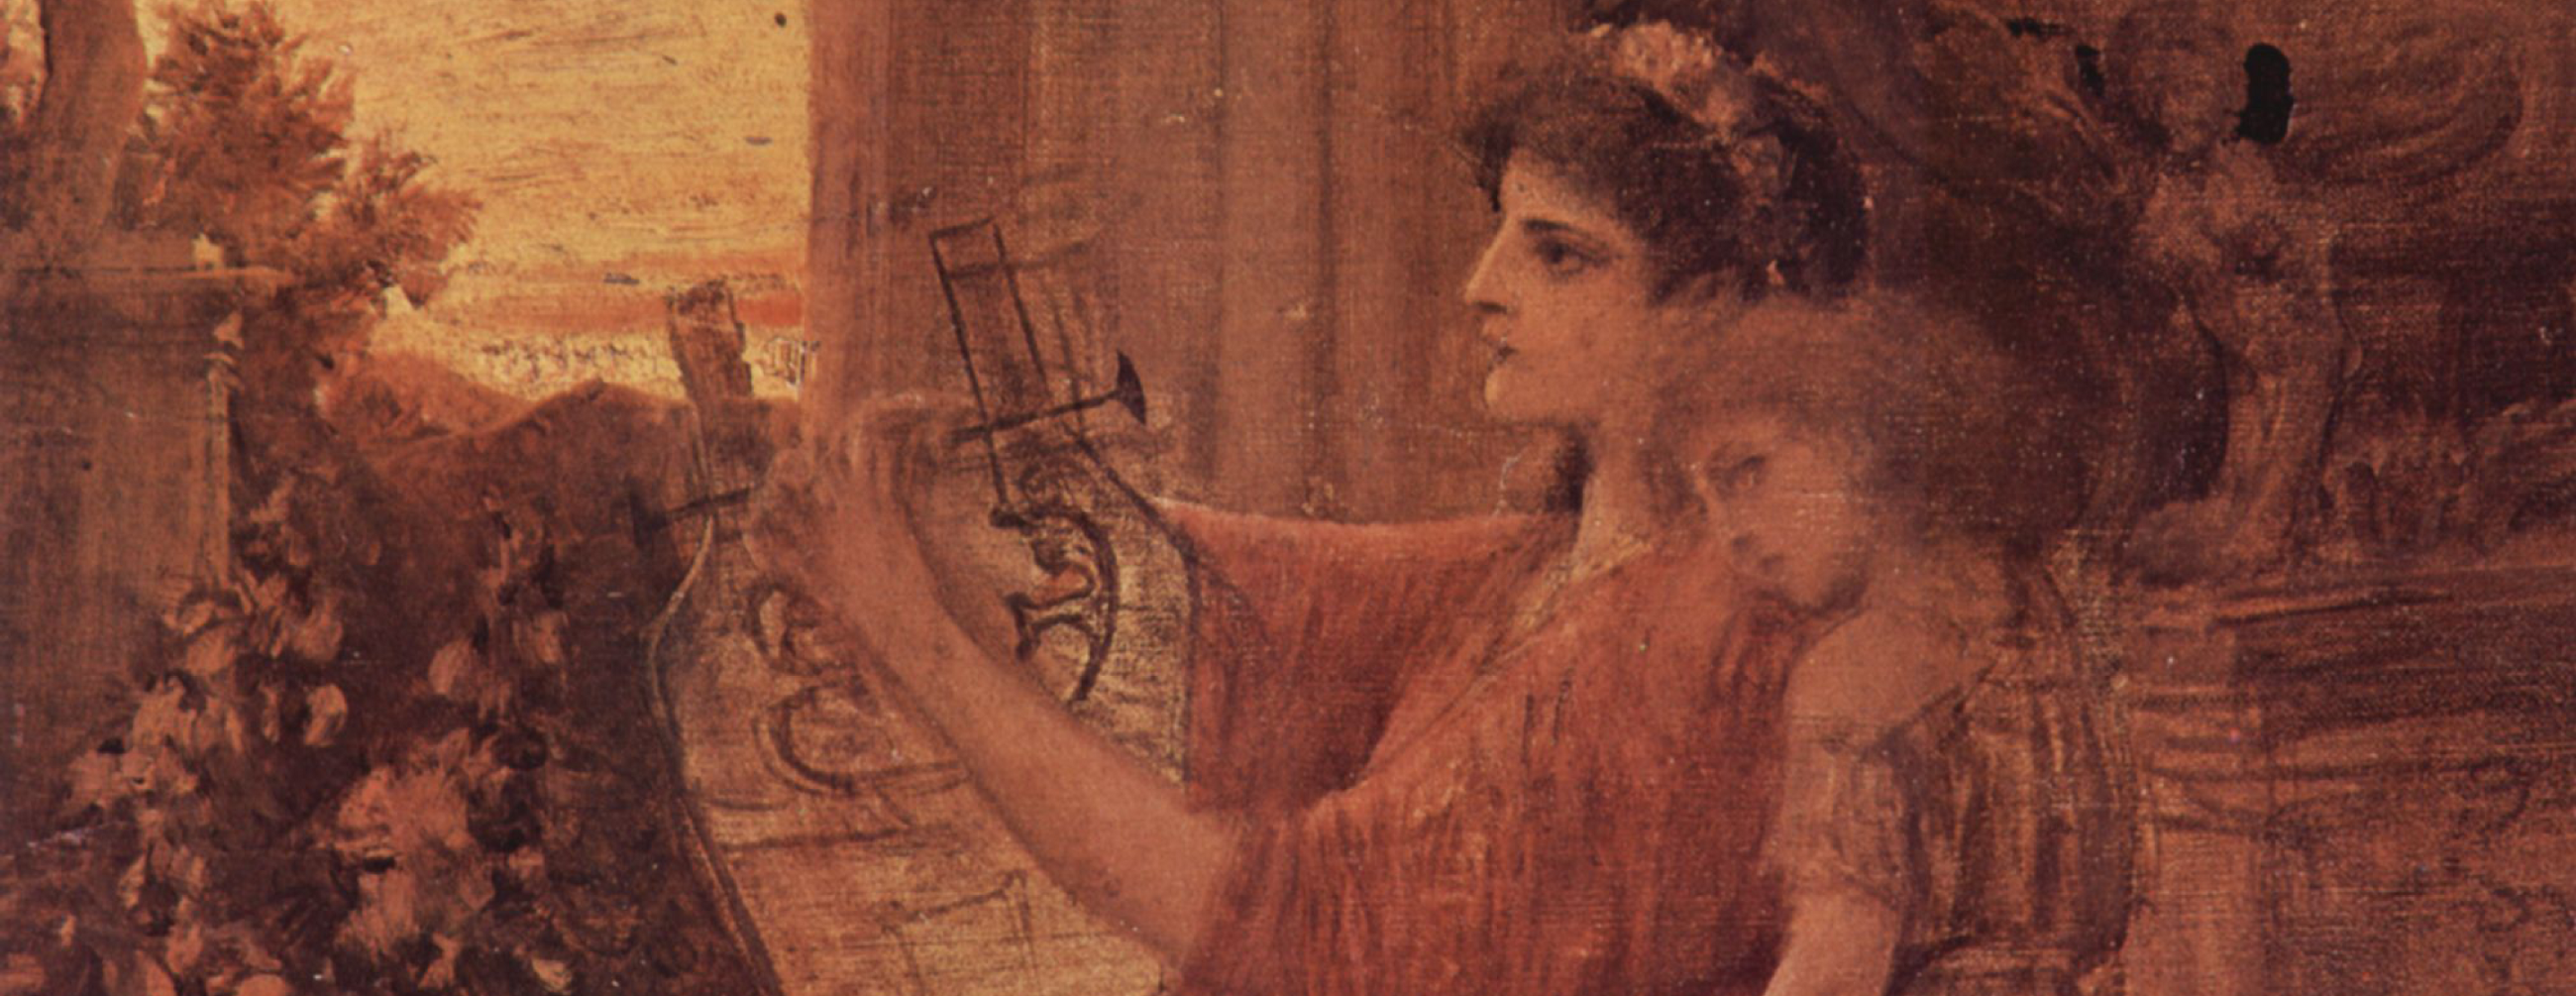 sappho analysis